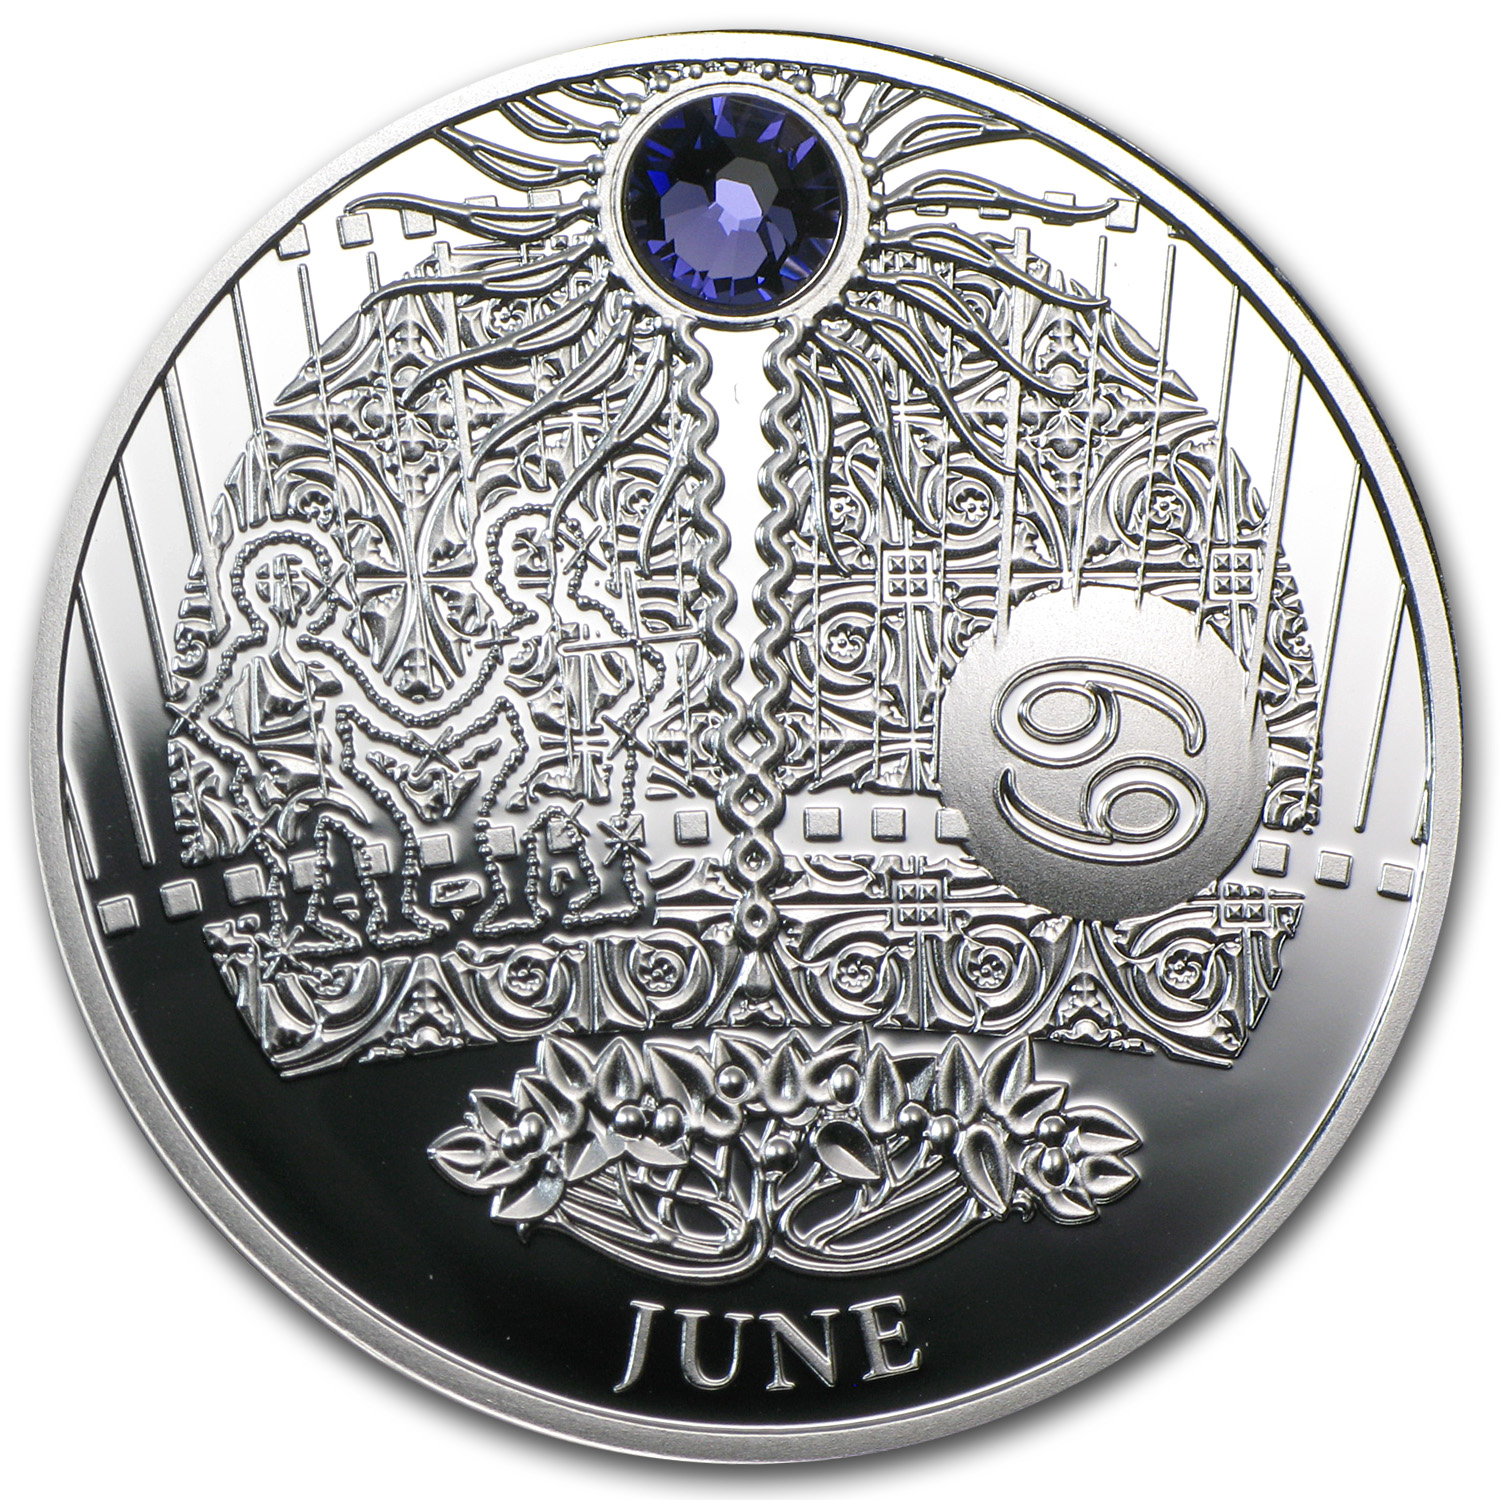 Niue 2013 Proof Silver $1 Magic Calendar of Happines - June